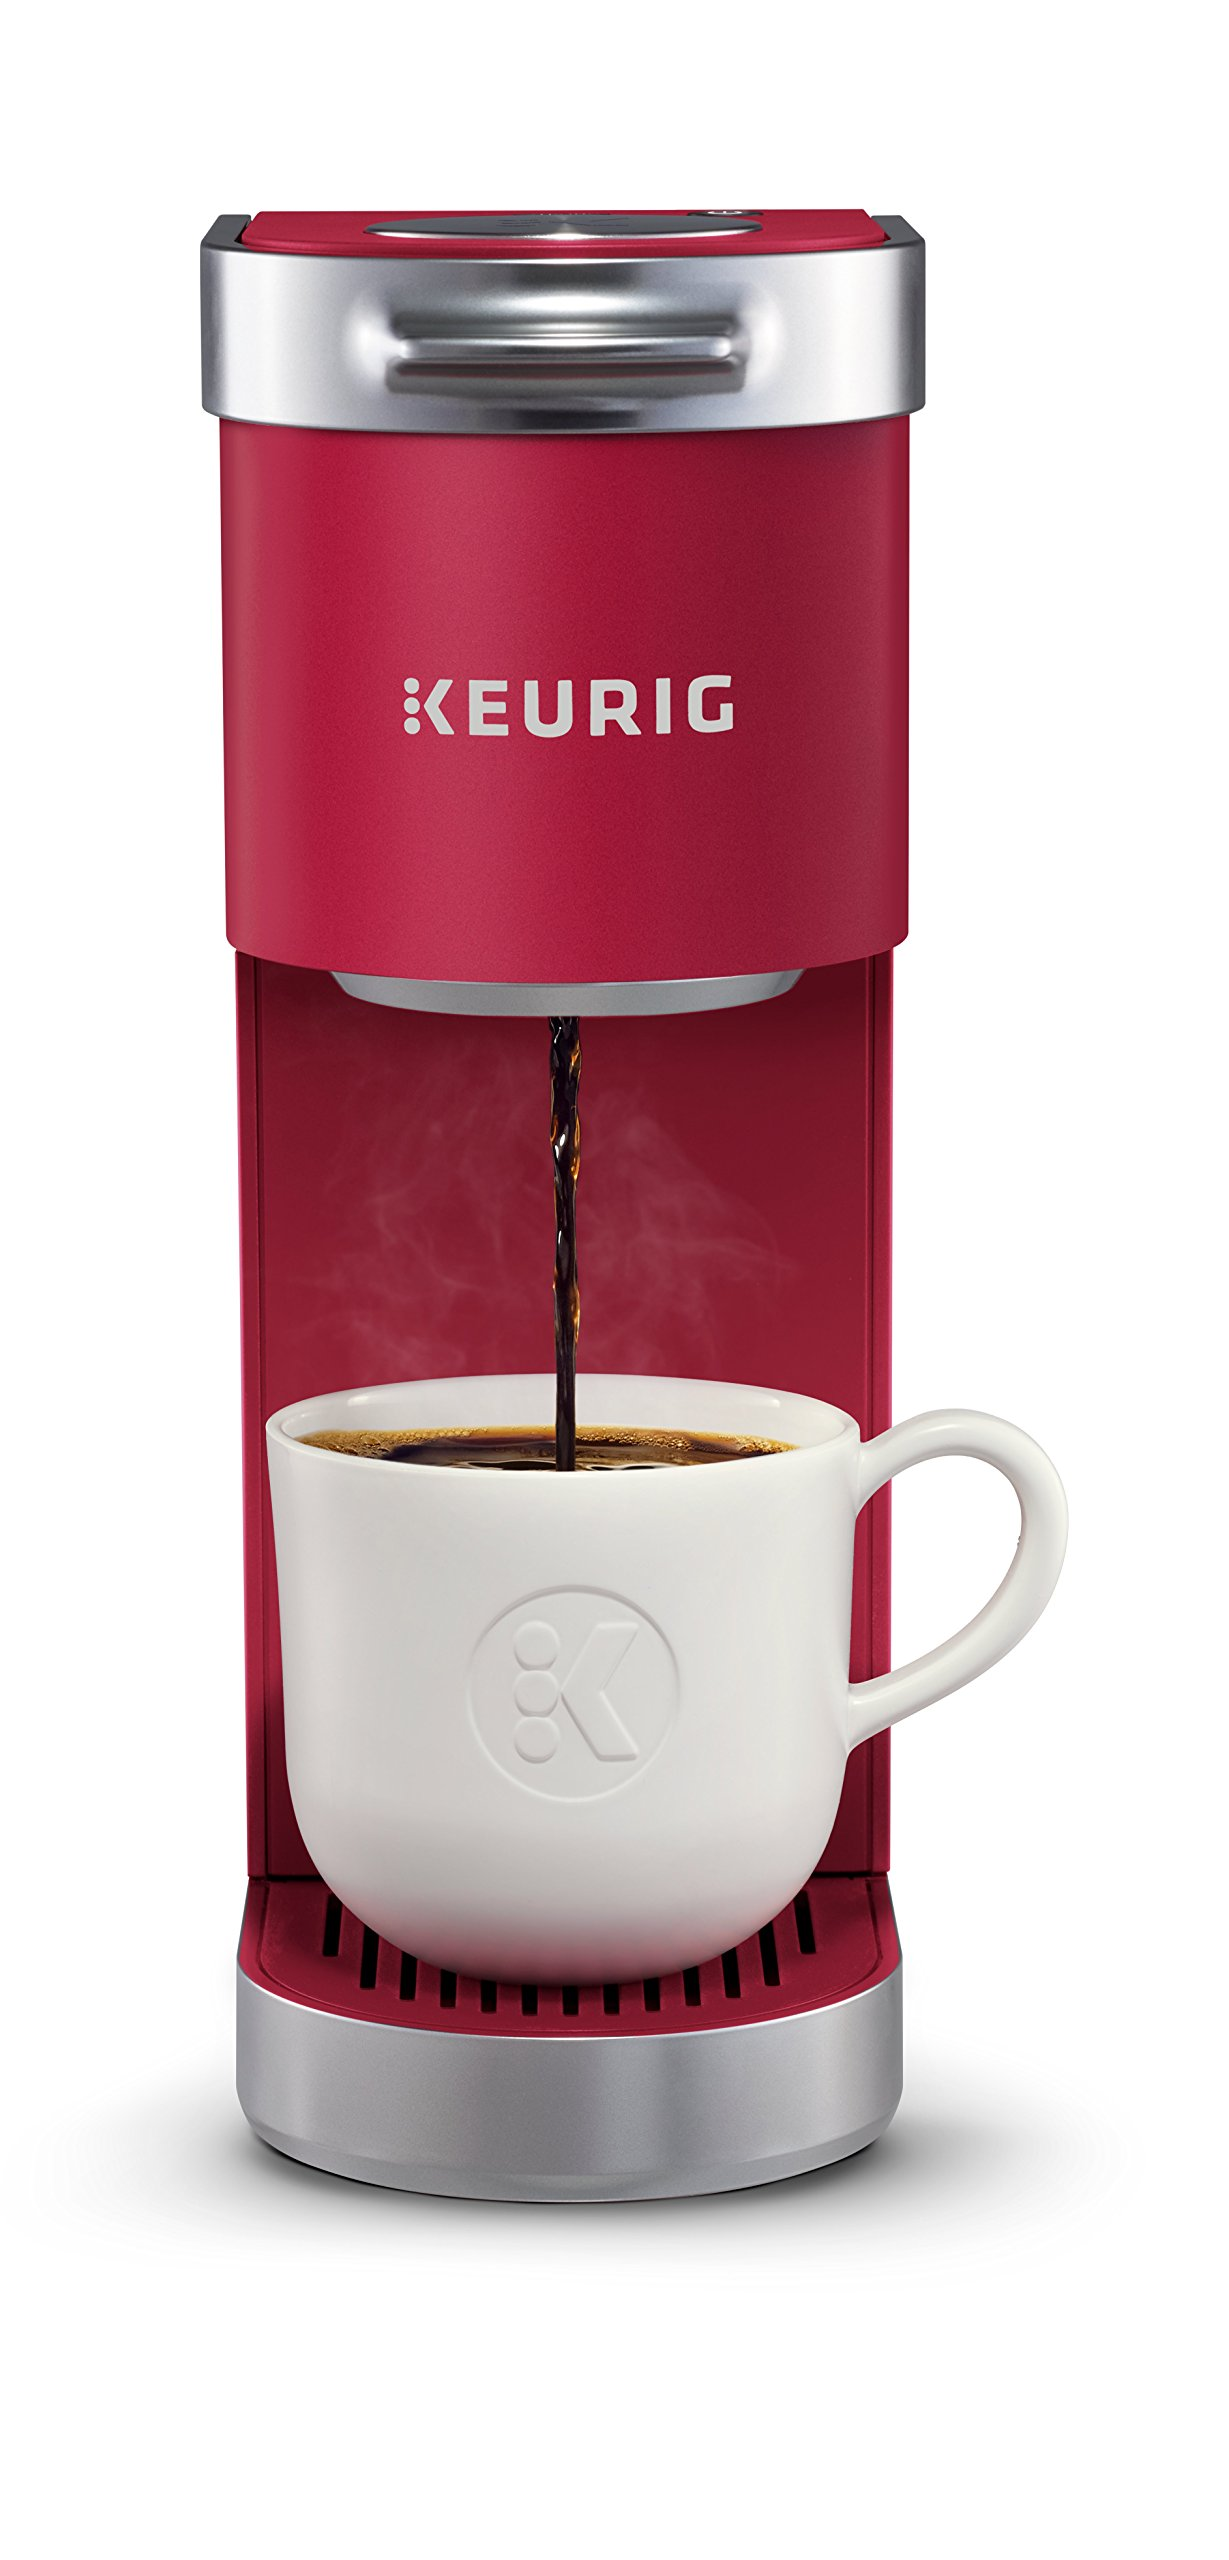 Keurig K-Mini Plus Single Serve K-Cup Pod Coffee Maker, with 6 to 12oz Brew Size, Stores up to 9 K-Cup Pods, Travel Mug Friendly, Cardinal Red